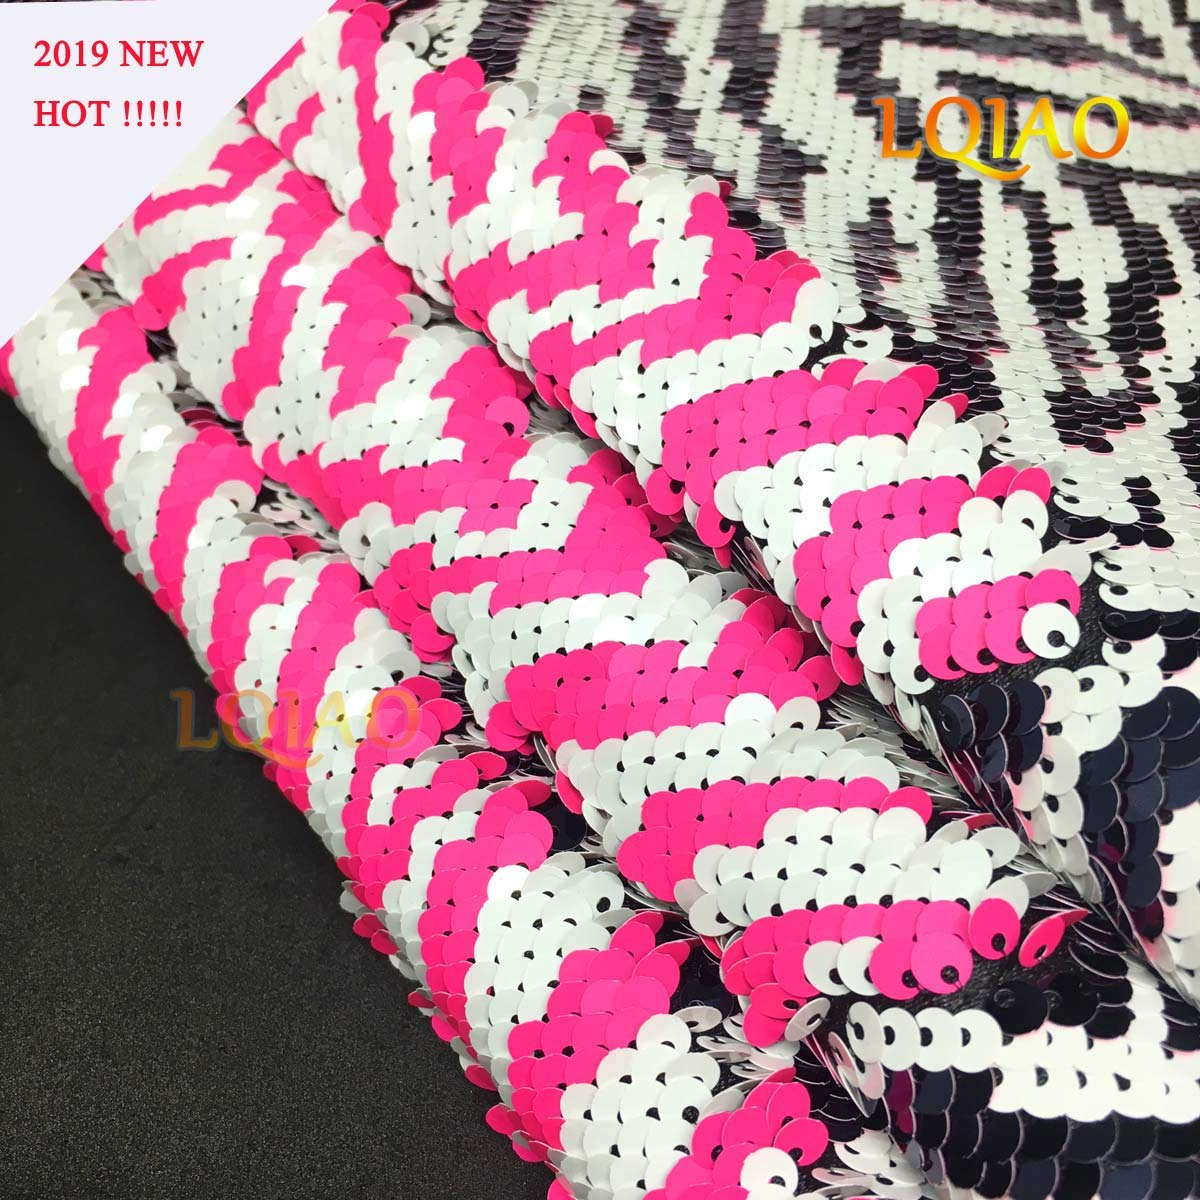 664ff1372fbe39 LQIAO Sequin Fabric Color Change Multicolor Zebra White Neon Pink Strips  Reversible Mermaid Sold by The Yard Two Tone Flip UP Sequin Cover Shimmer  Fabric ...